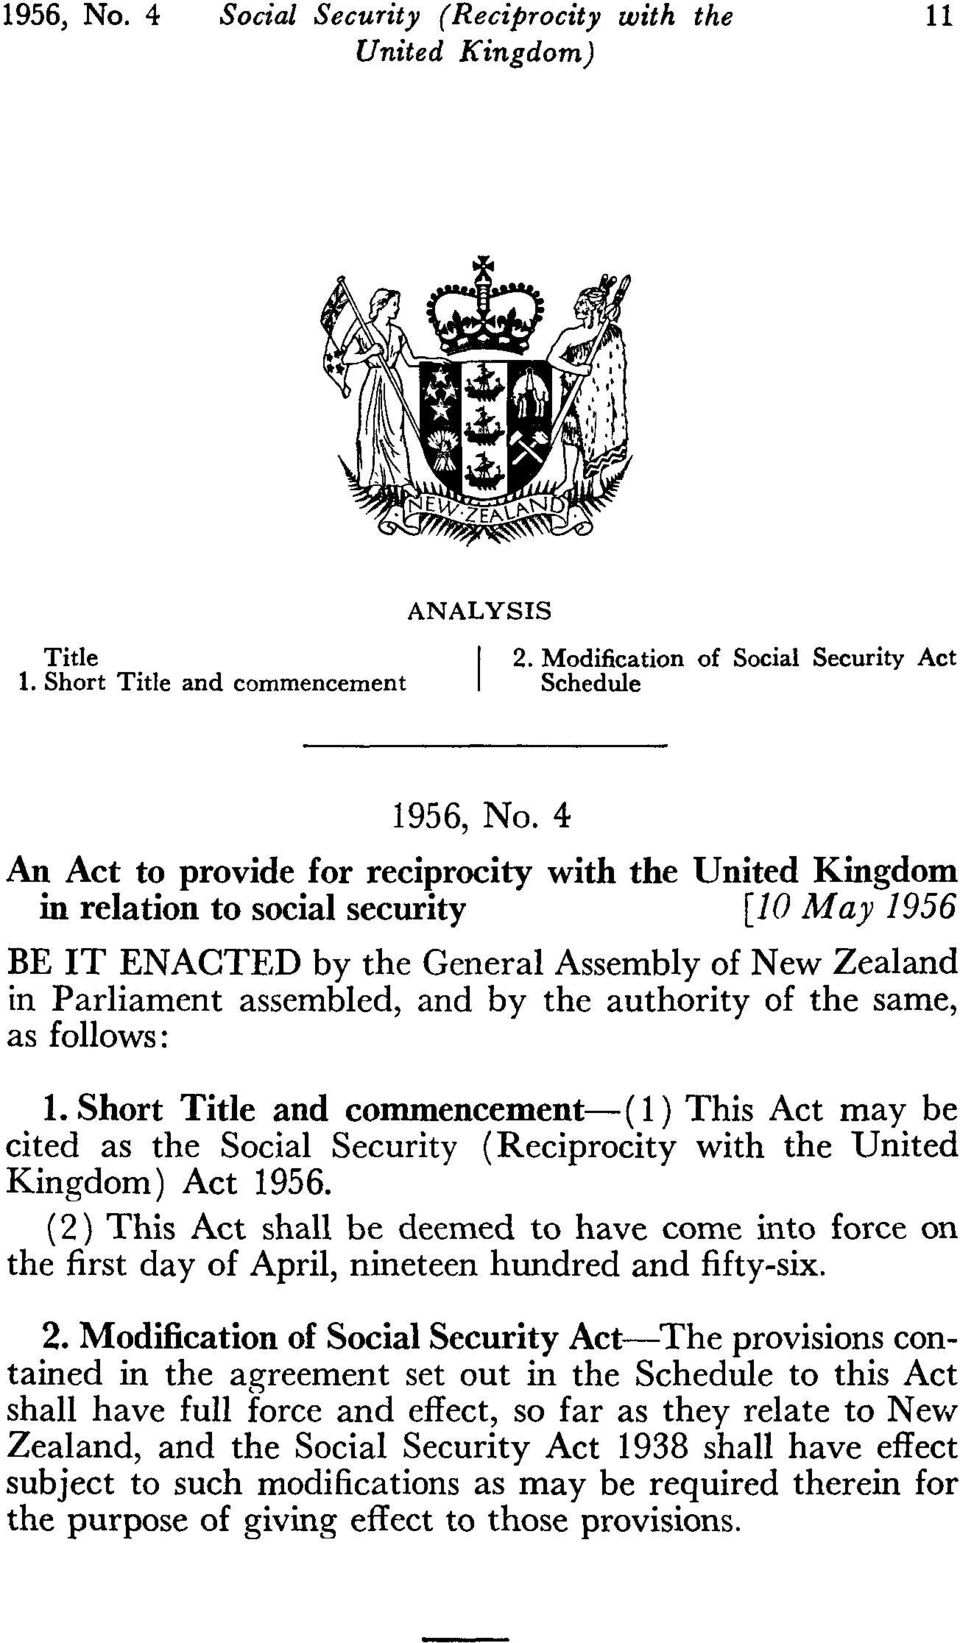 authority of the same, as follows: 1. Short Title and commencement-( 1) This Act may be cited as the Social Security (Reciprocity with the United Kingdom) Act 1956.